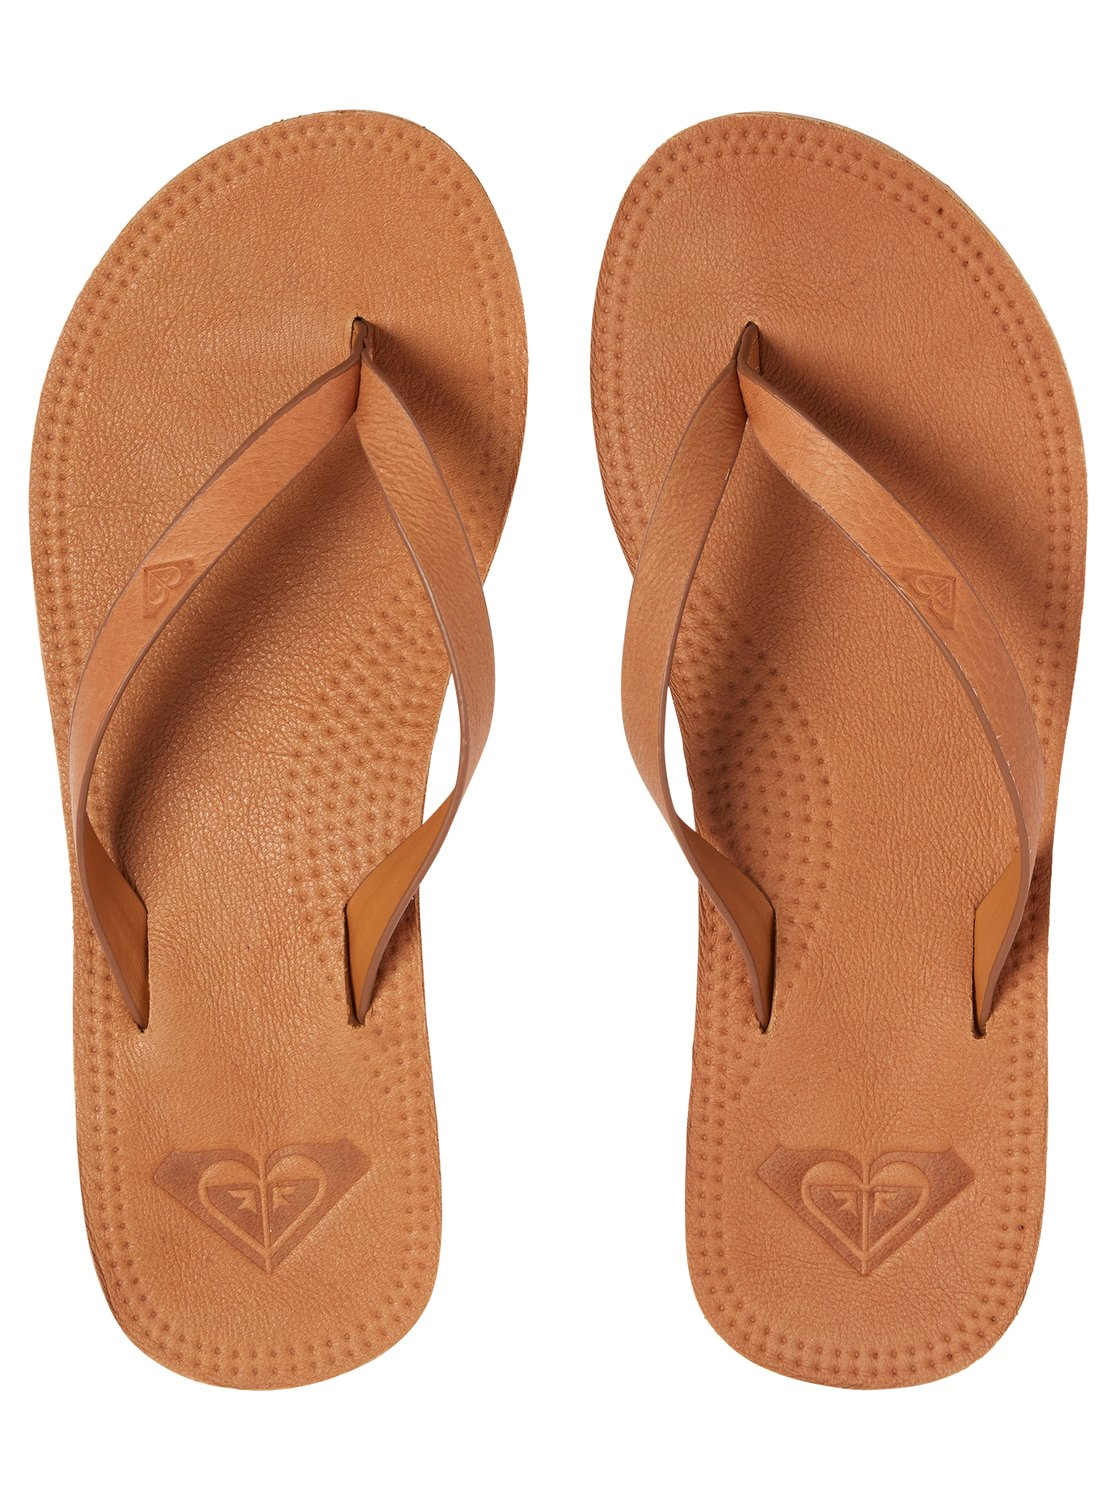 836f8a1f7eb0b Details about Roxy™ Brinn Leather Flip-Flops for Women ARJL200689